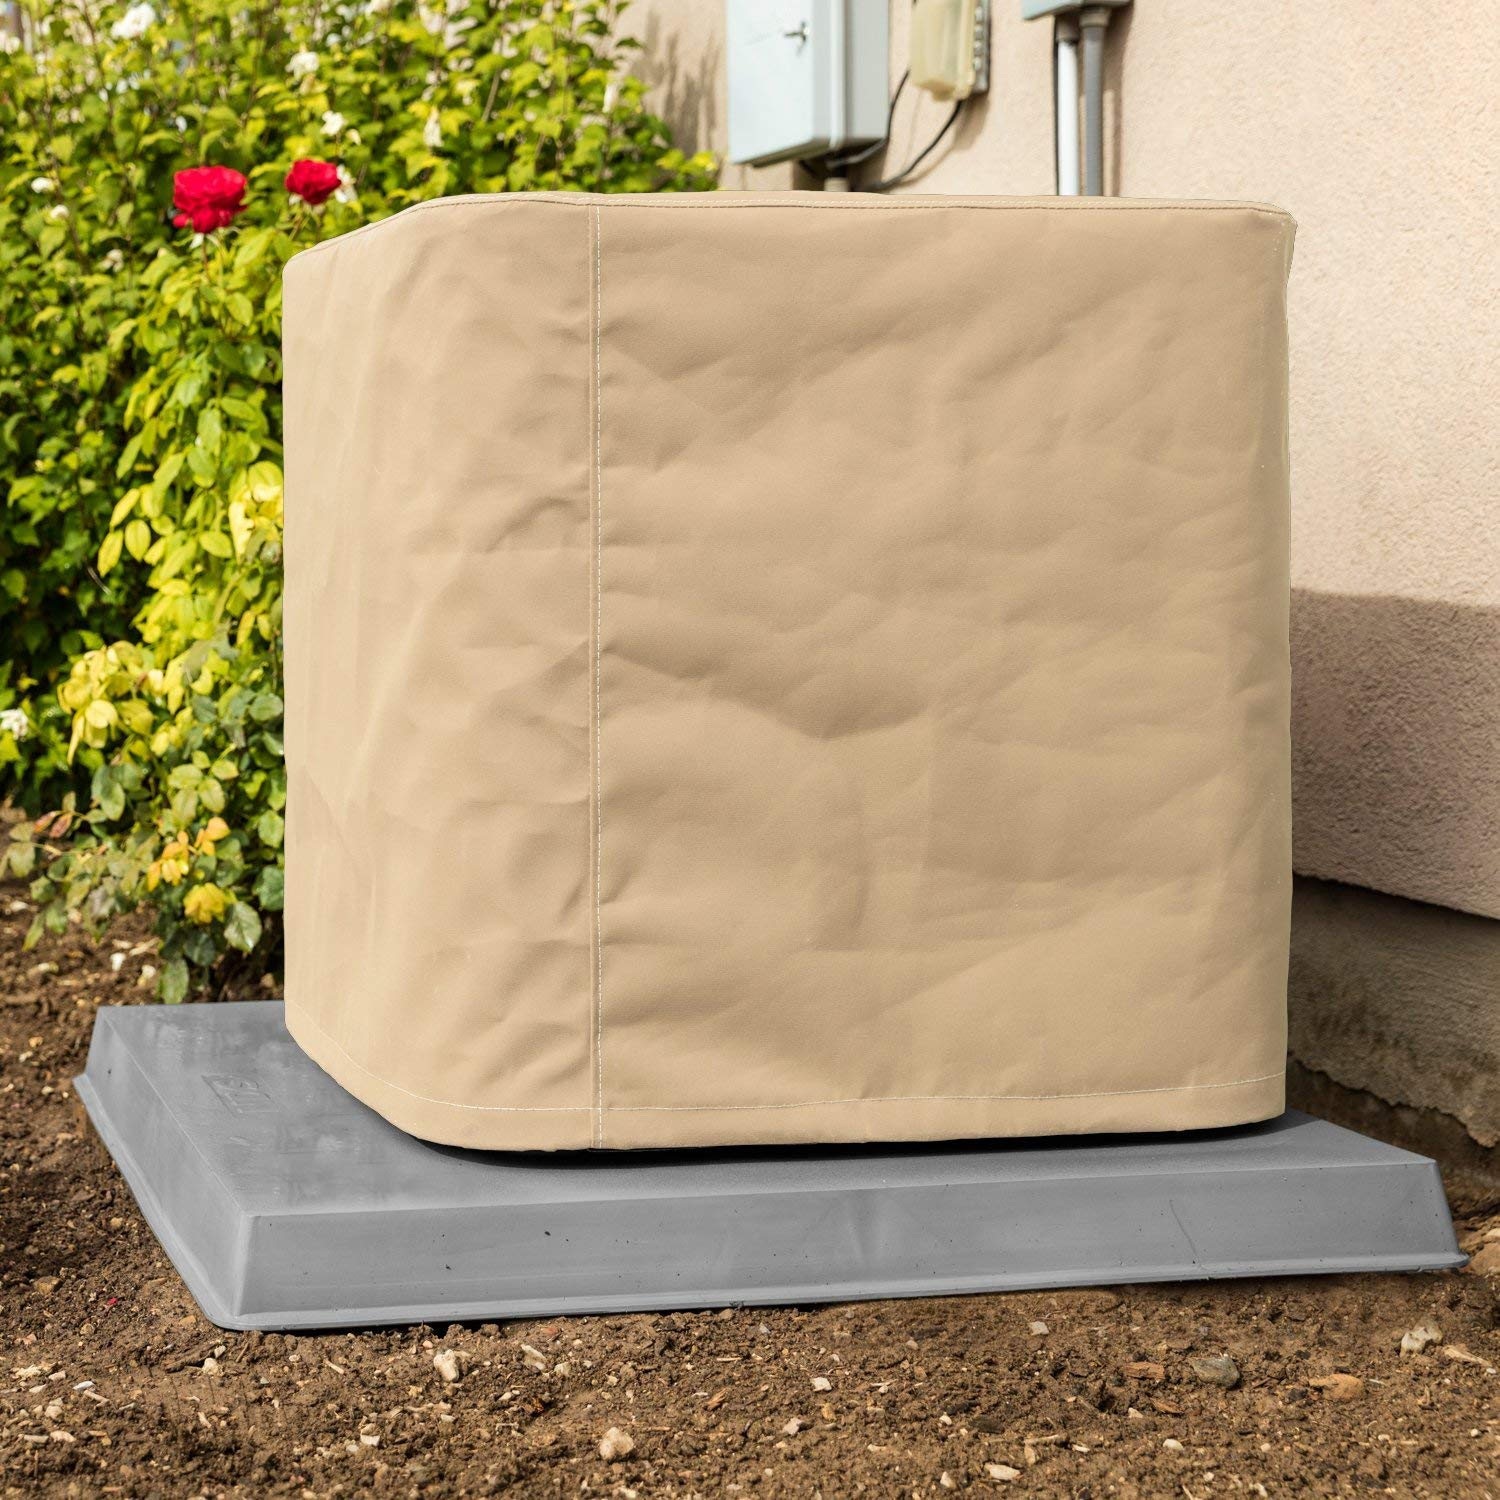 SugarHouse Custom Covers Outdoor Air Conditioner Cover 24x24x24 - Premium Marine Canvas - Gray - Made in the USA - 5-year Warranty